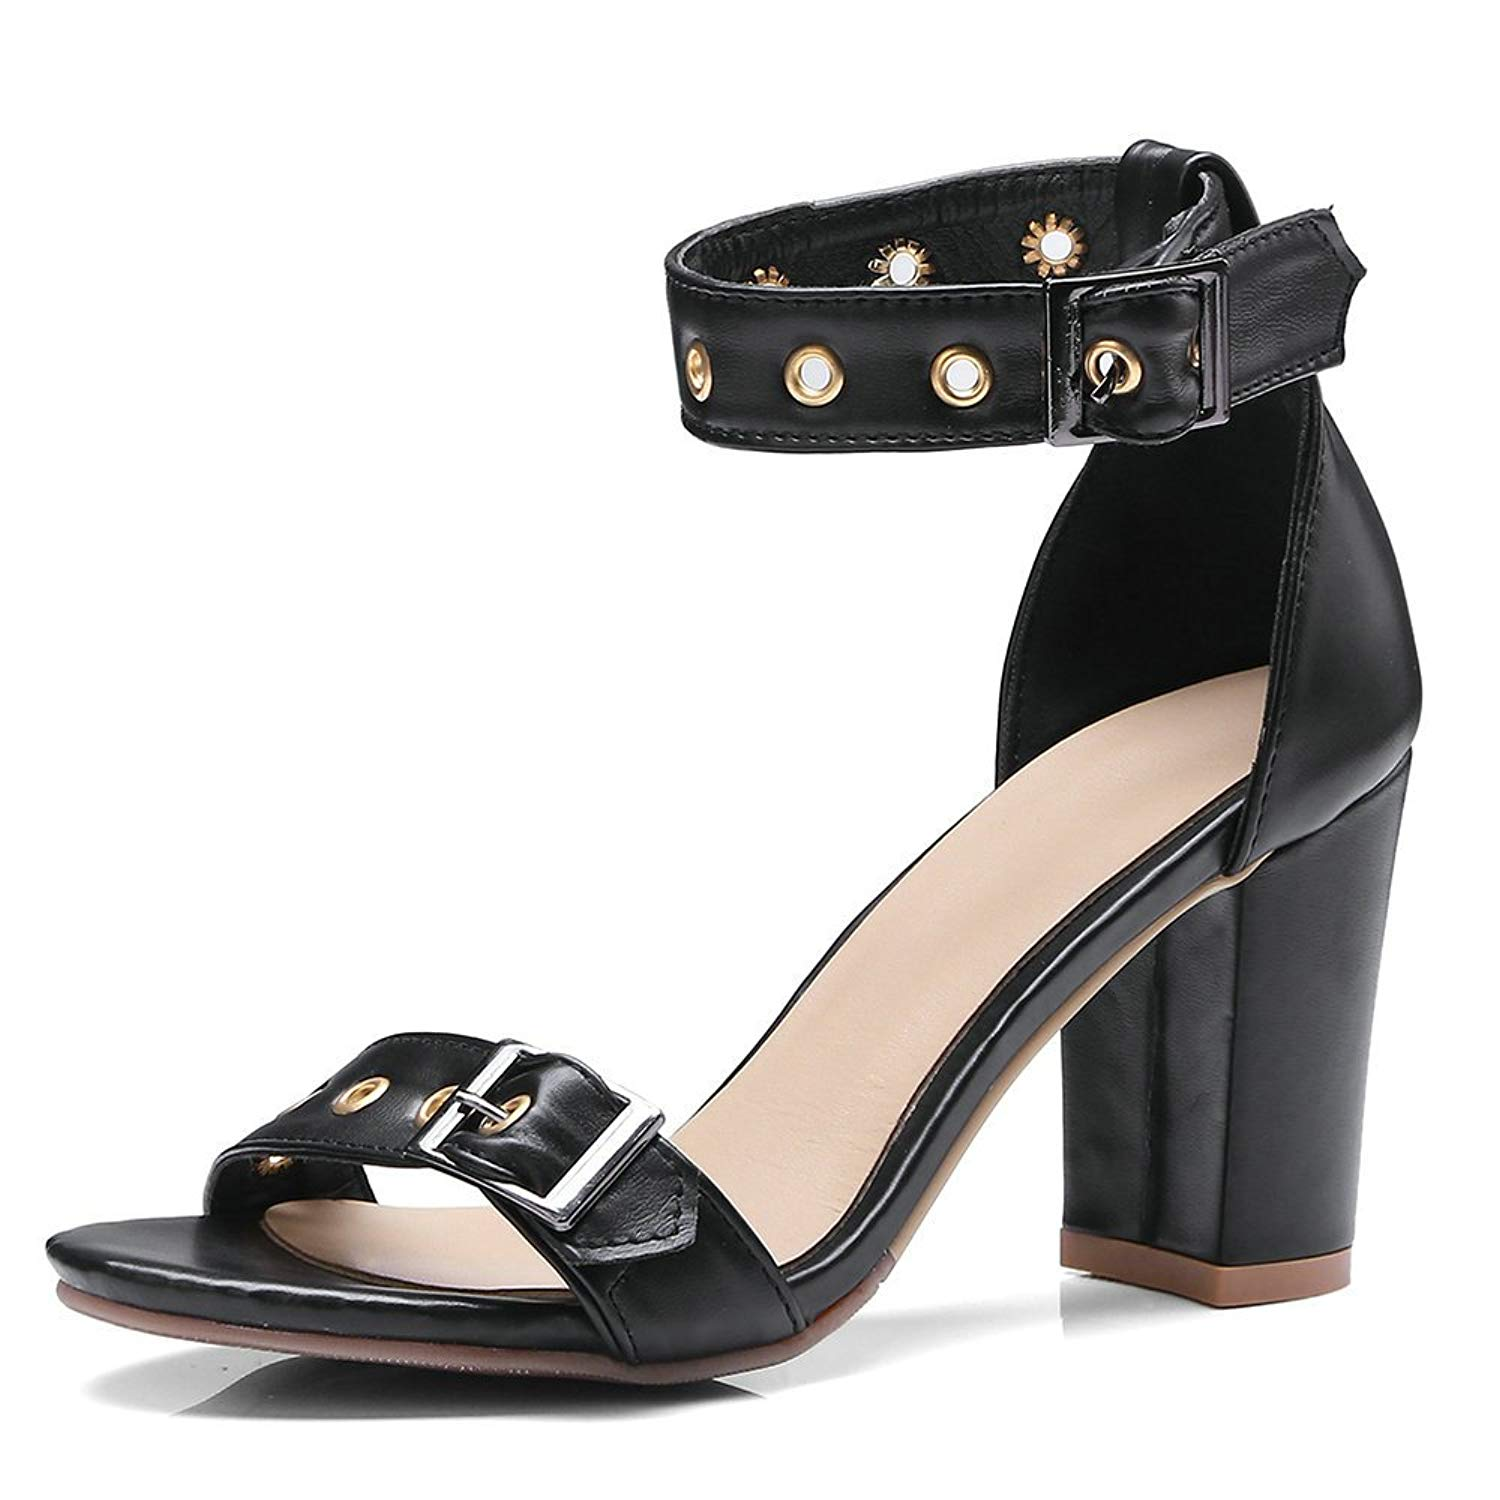 21f8010348ea Get Quotations · Fashion Block Heel Sandals Women Ankle Strap Buckle Chunky High  Heel Open Toe Studded Heeled Sandals